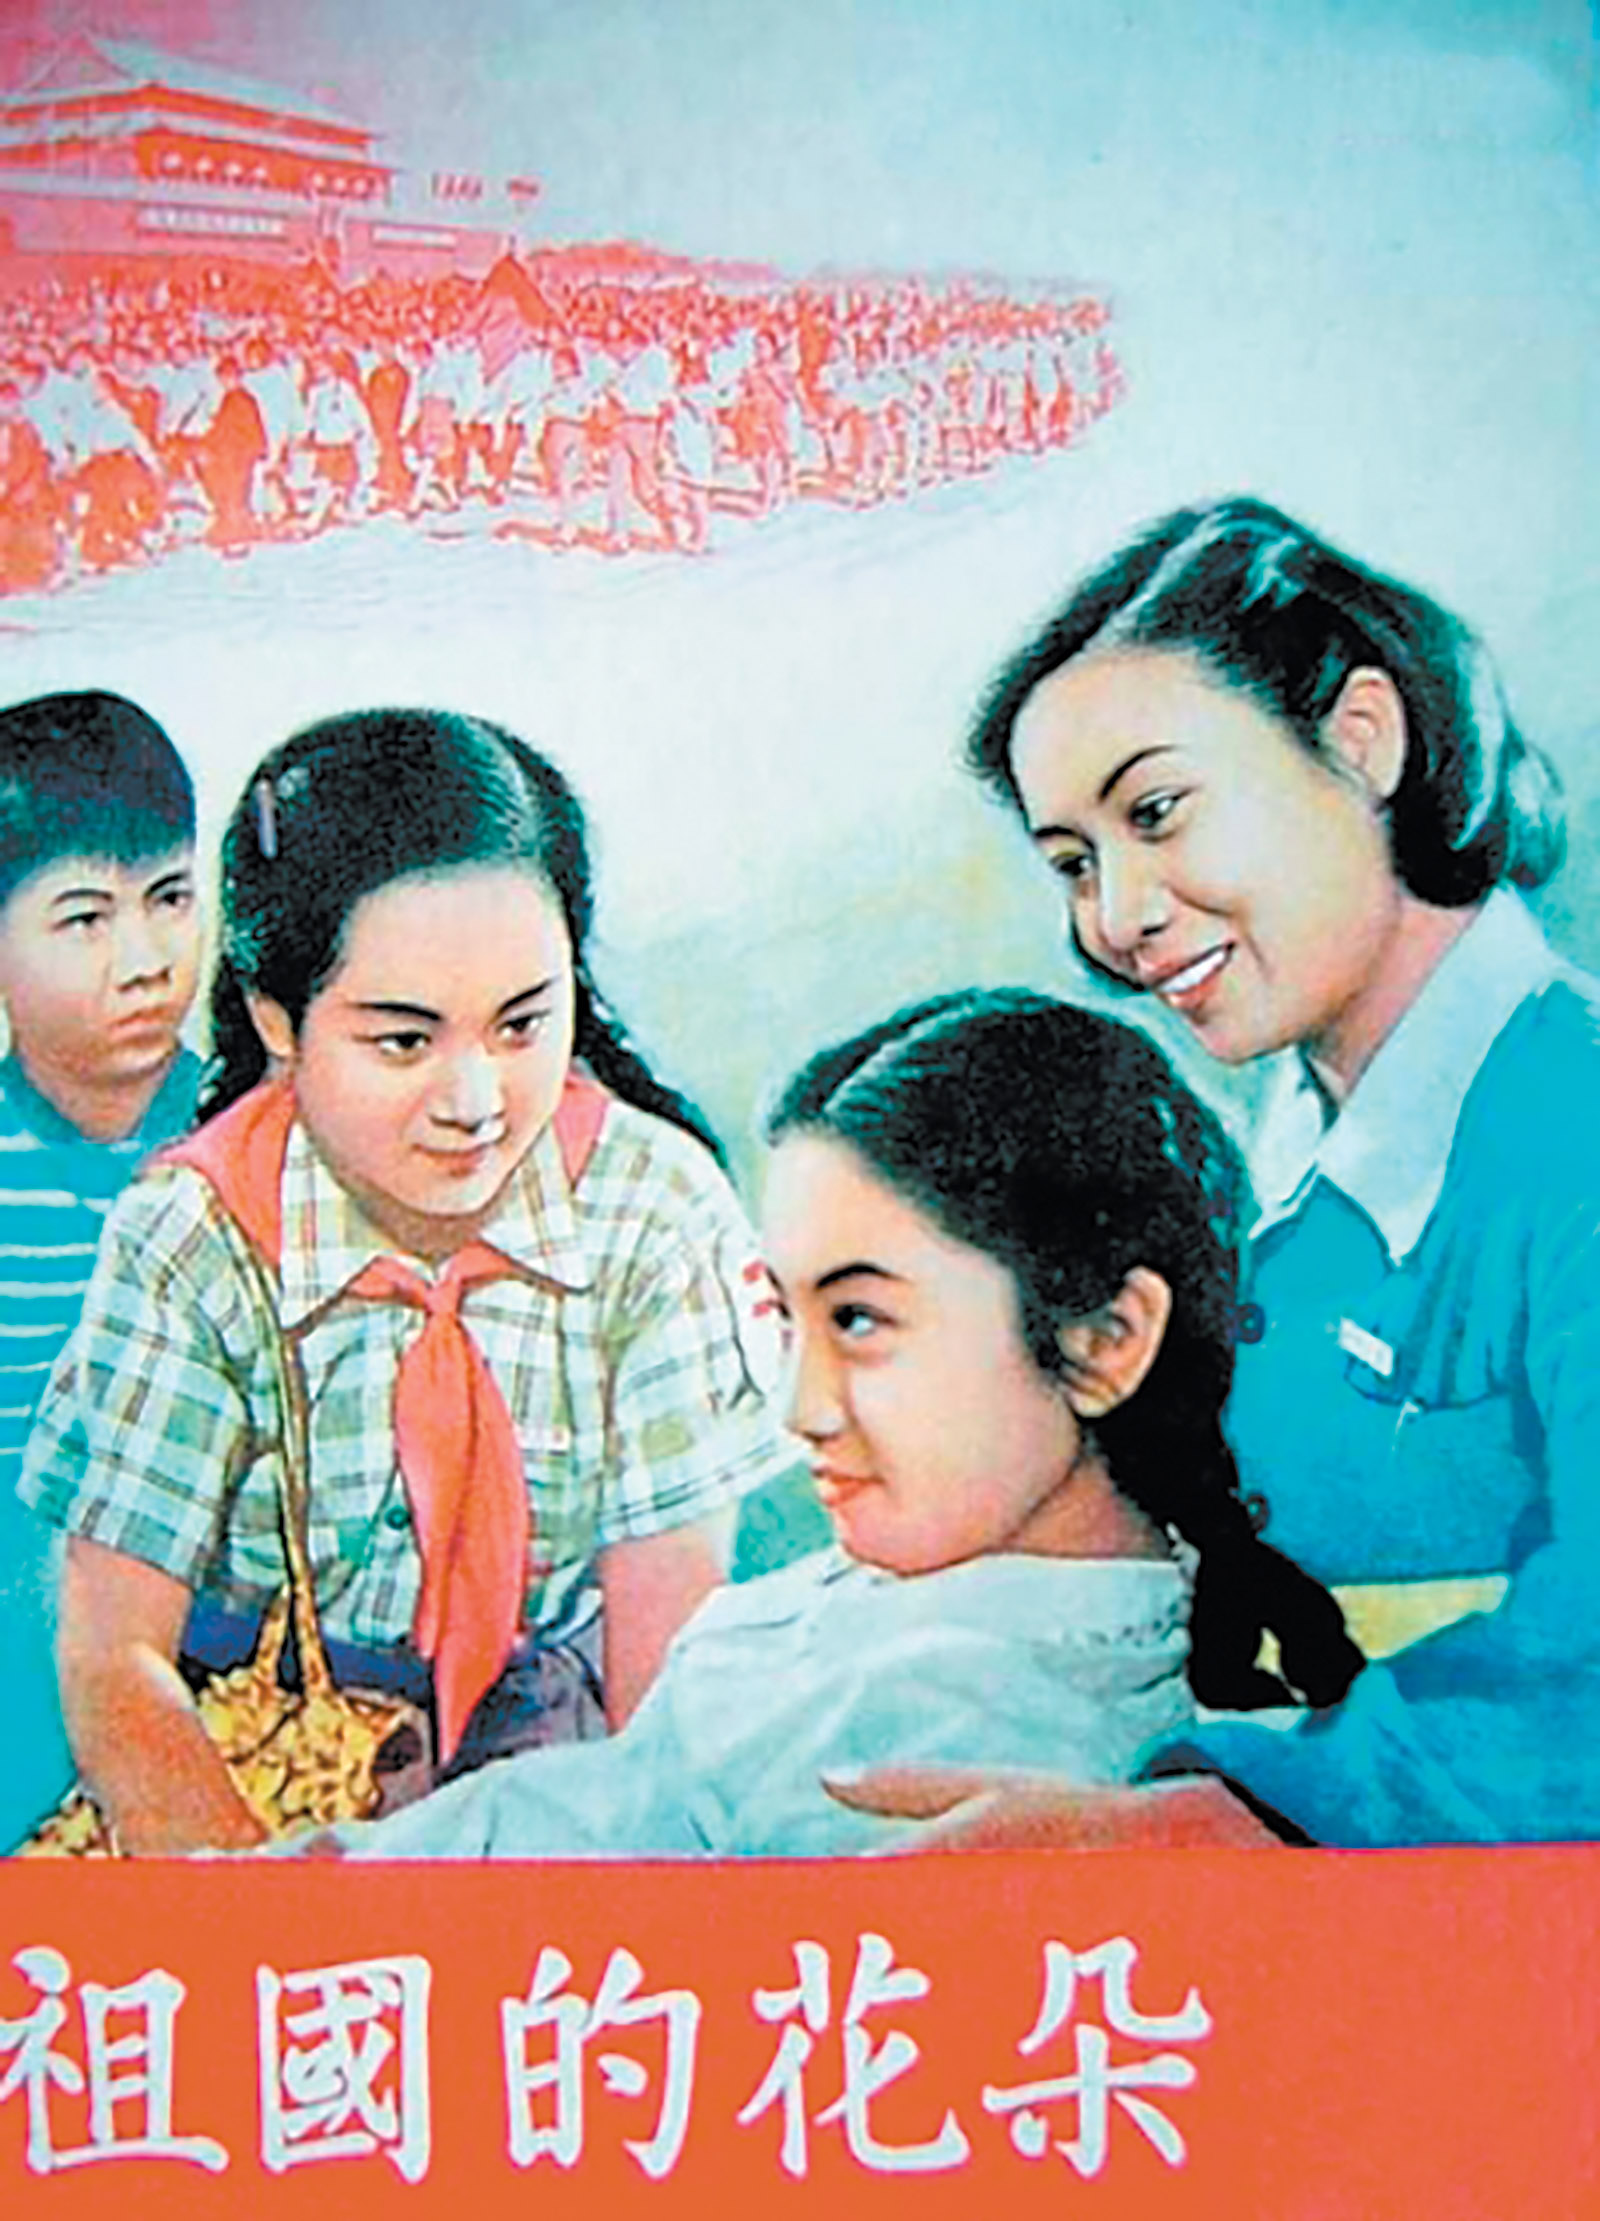 A poster for the 1955 film Flowers of the Motherland, about Chinese children joining the Young Pioneers